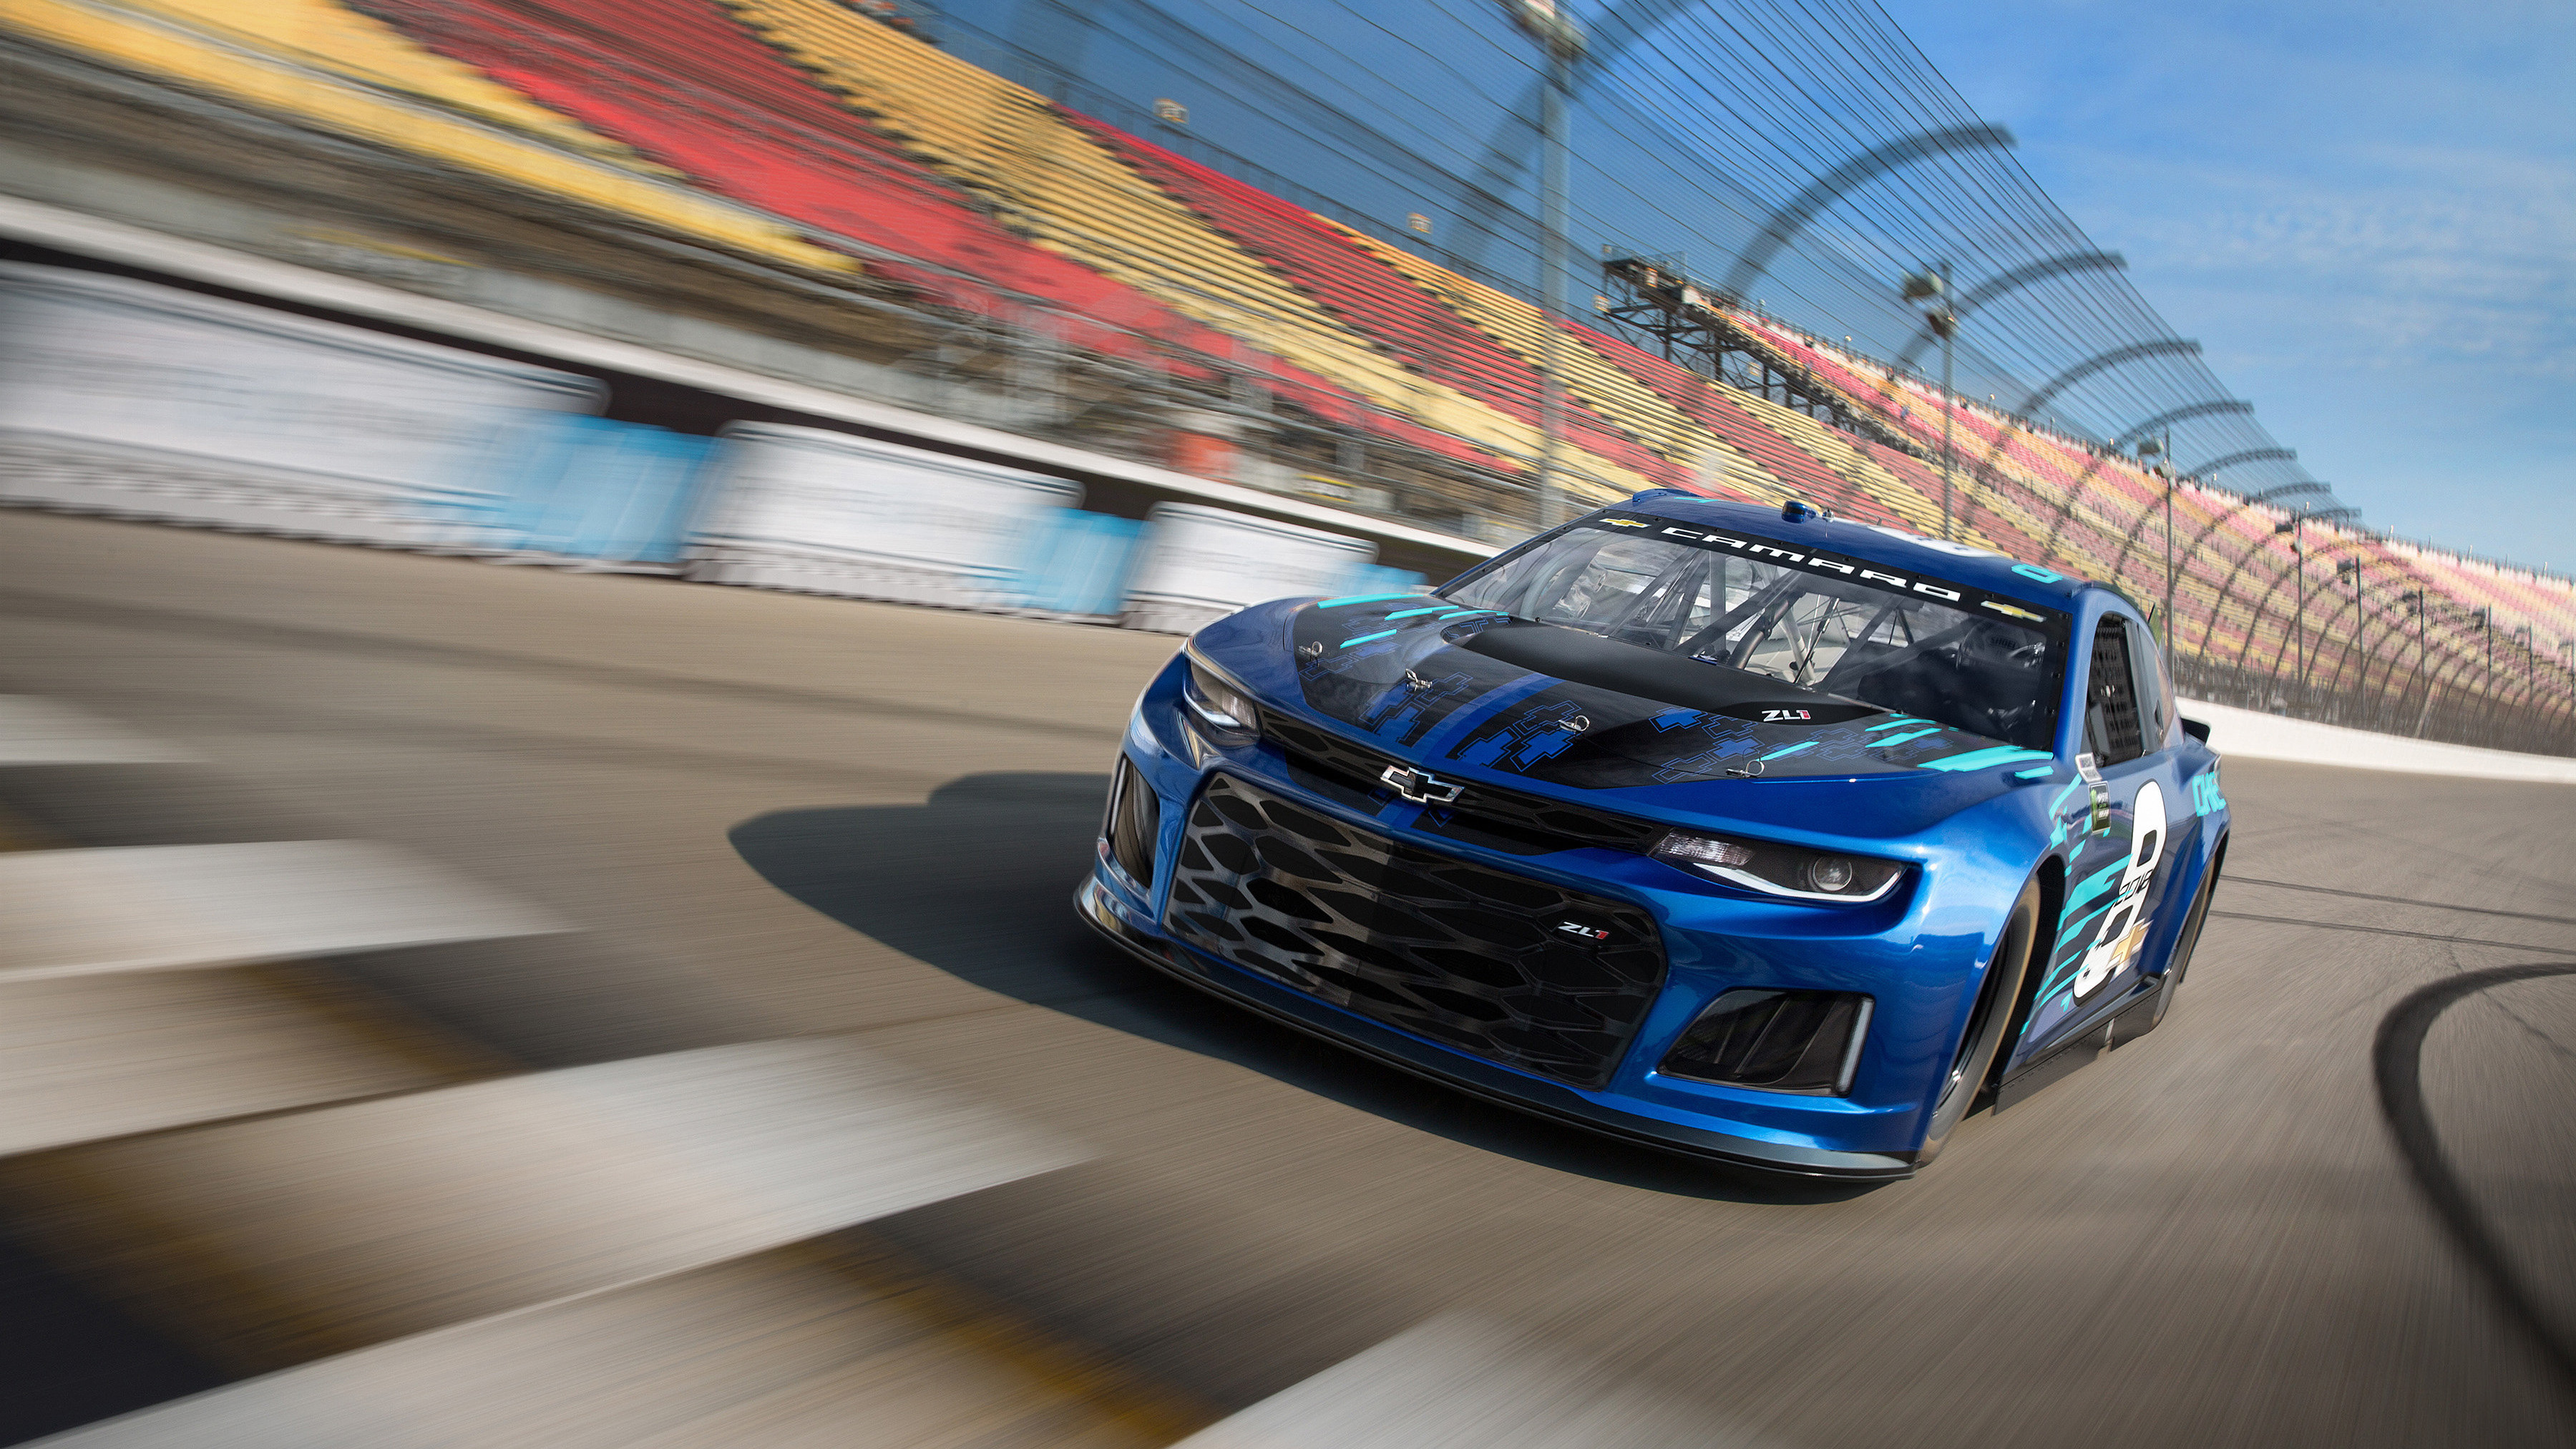 3600x2025 2018 Chevrolet Camaro ZL1 Nascar Race Car